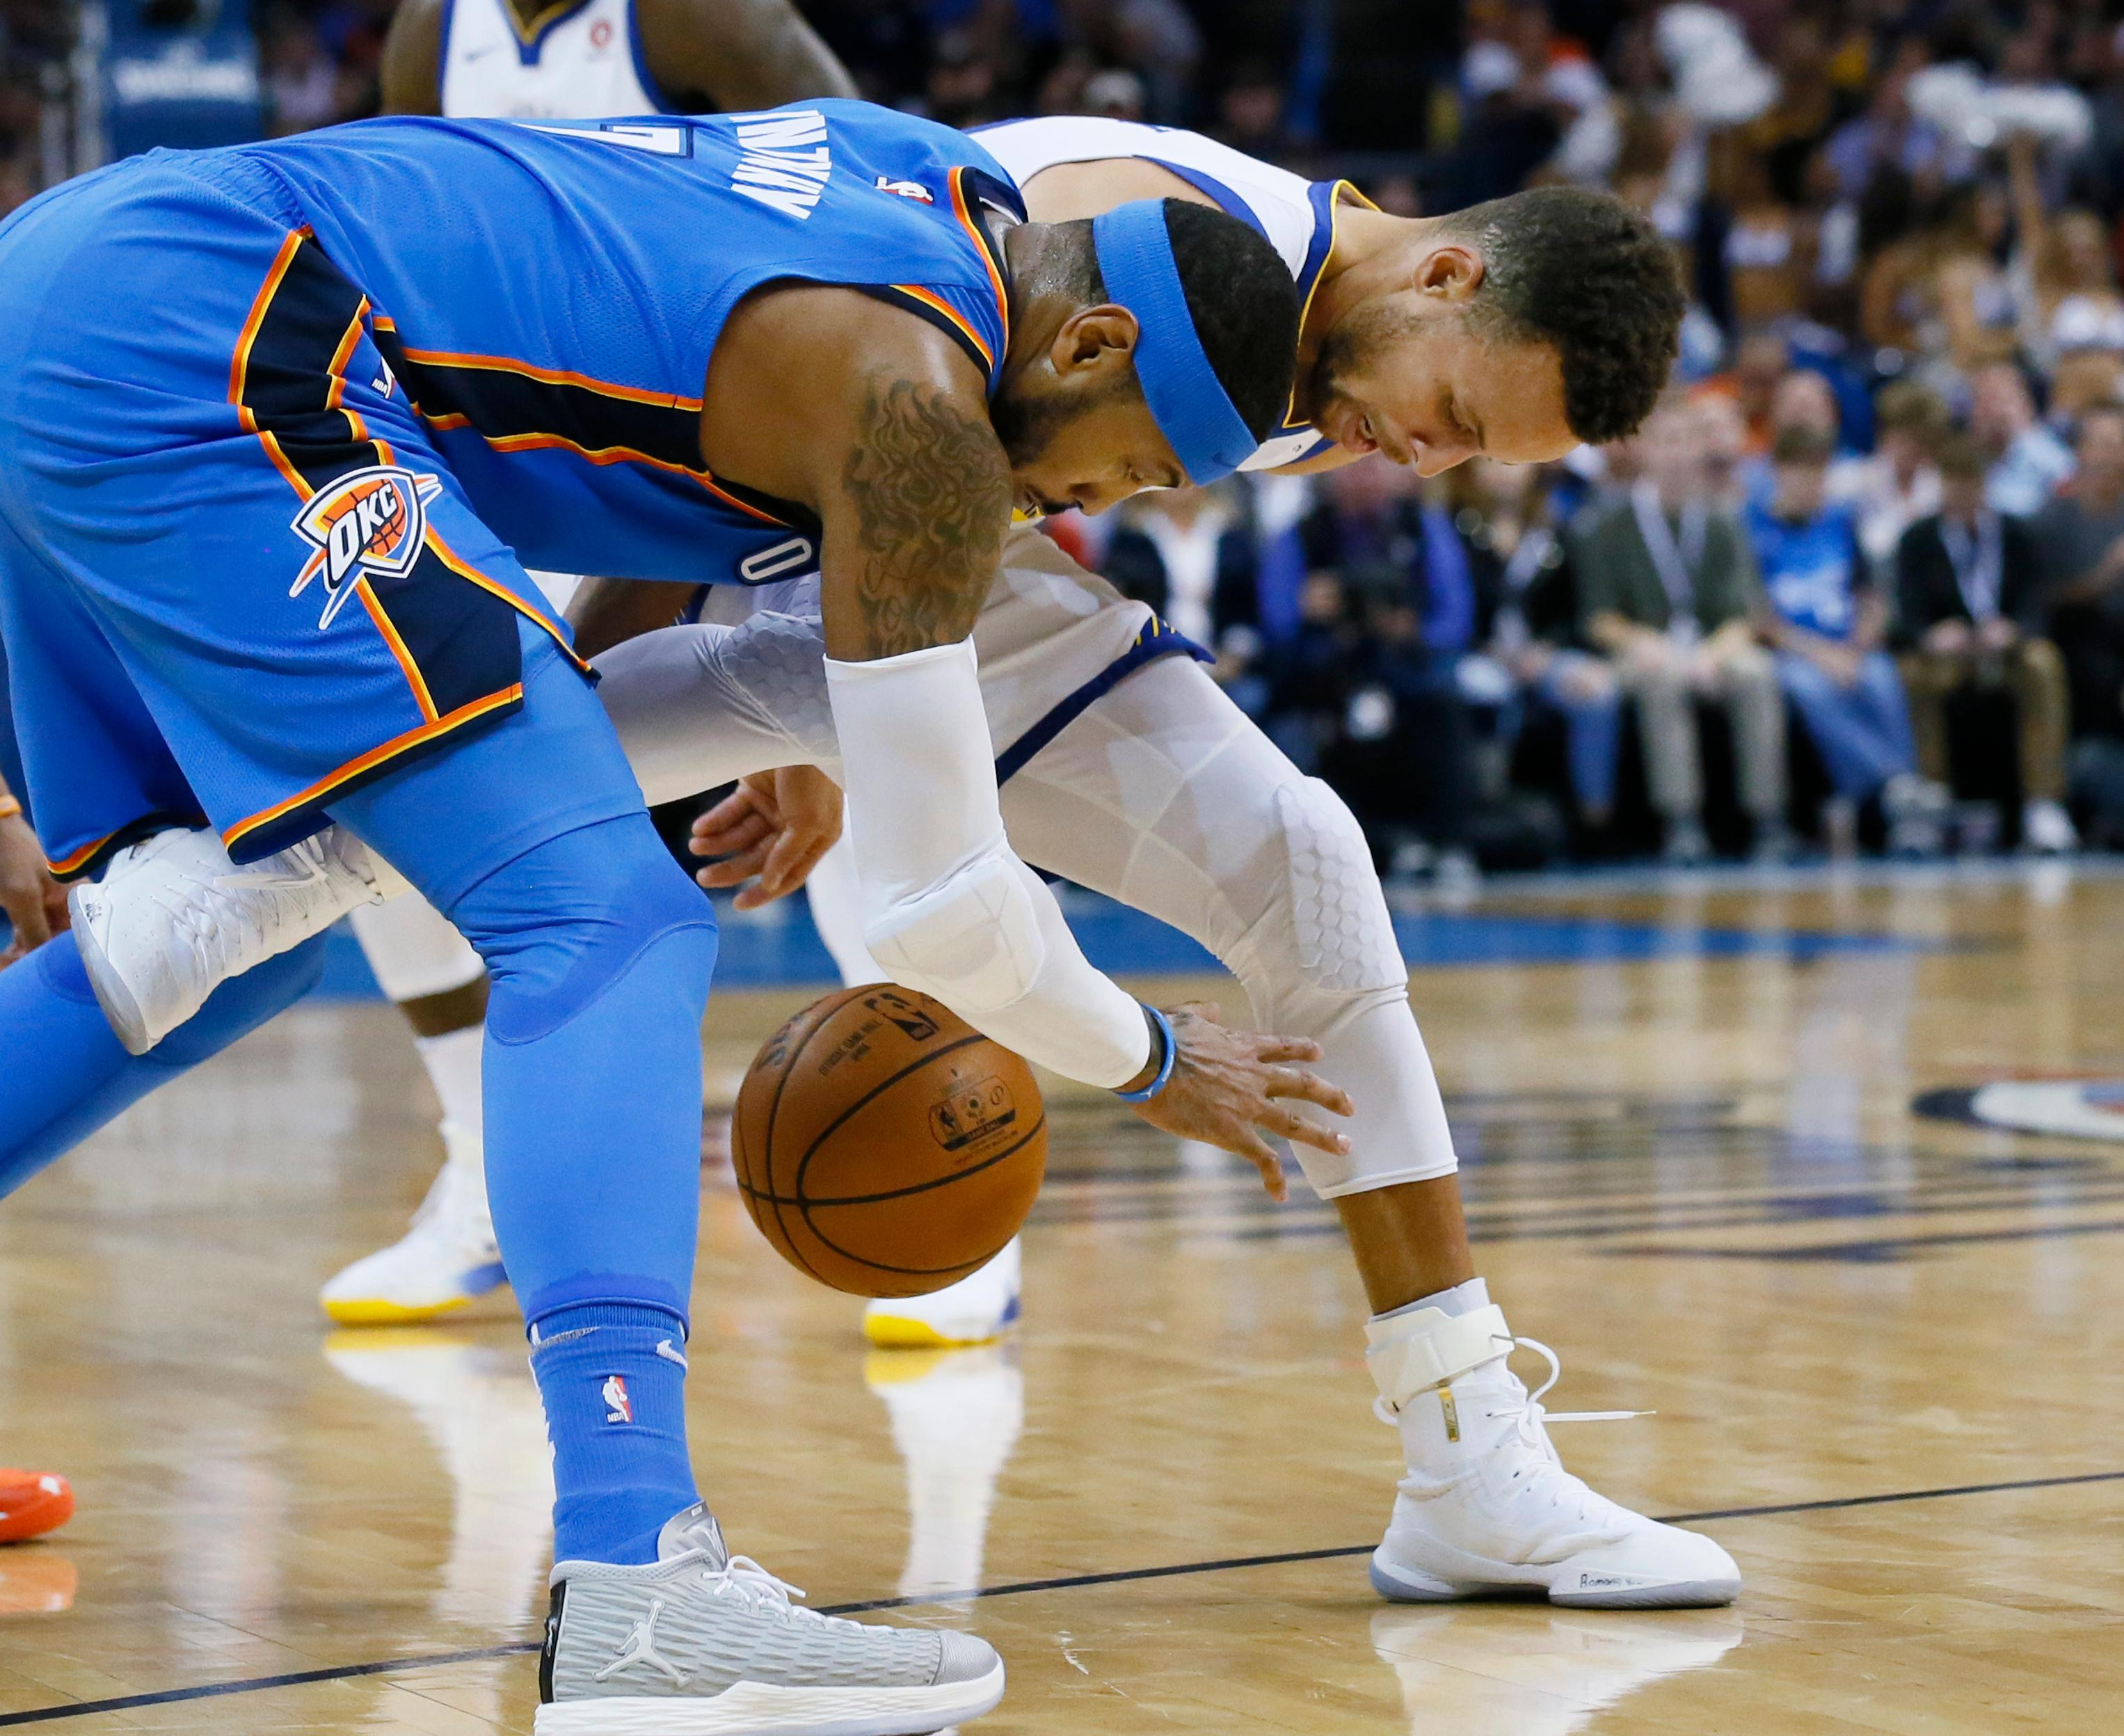 Oklahoma City Thunder forward Carmelo Anthony, left, steals the ball from Golden State Warriors guard Stephen Curry during the first quarter of an NBA basketball game in Oklahoma City, Wednesday, Nov. 22, 2017. (AP Photo/Sue Ogrocki)